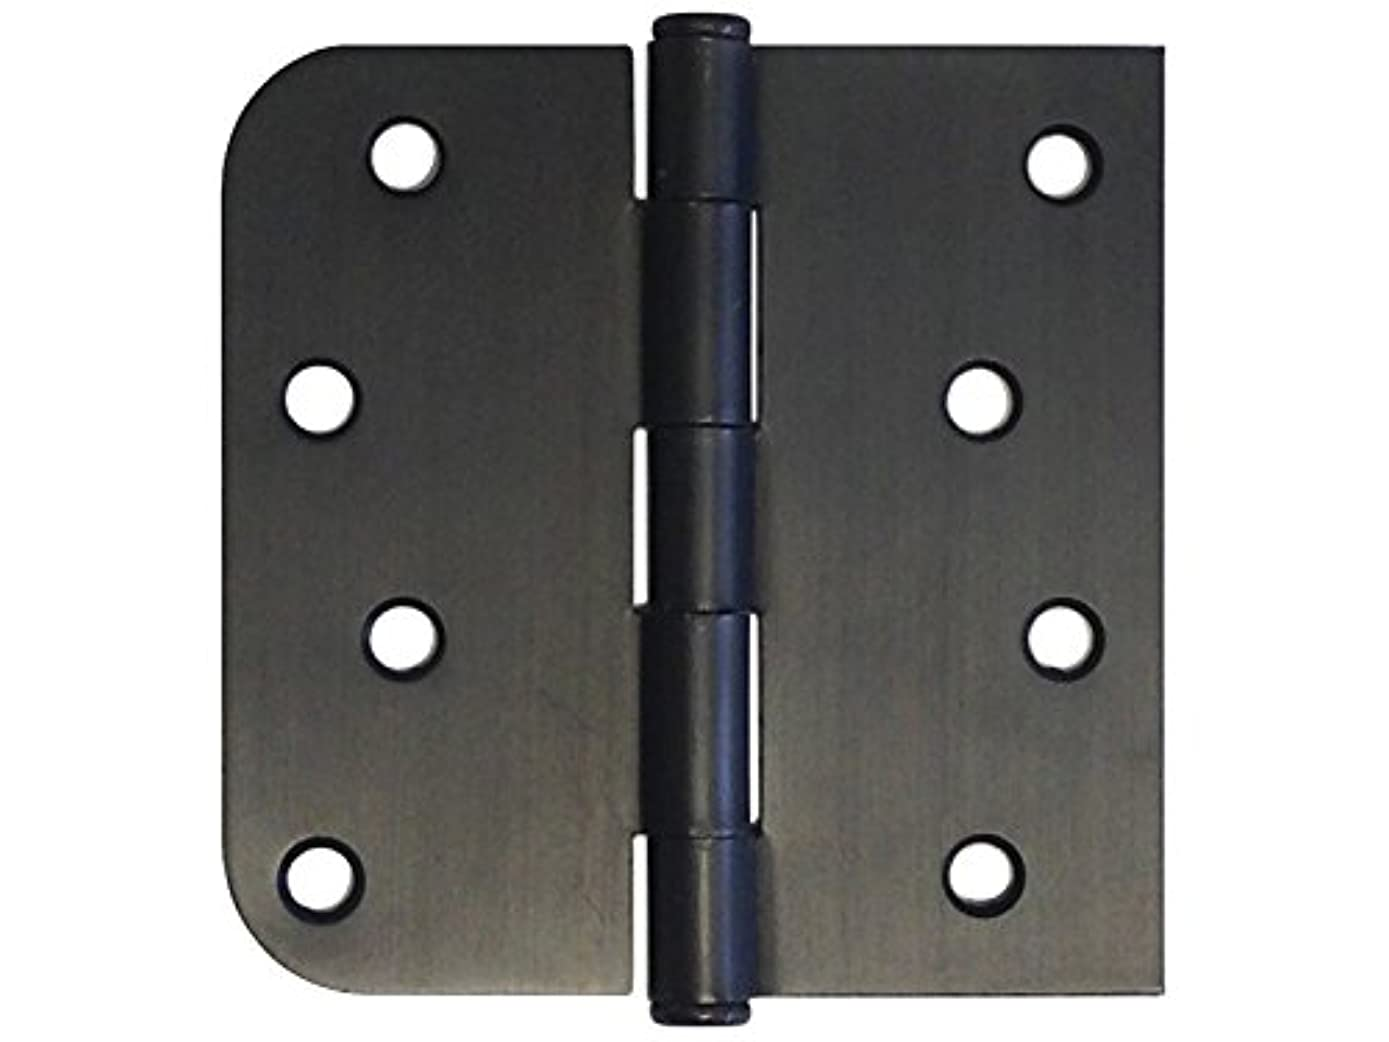 6 Pack Oil Rubbed Bronze Finish Interior Exterior Door Hinges US10B (4